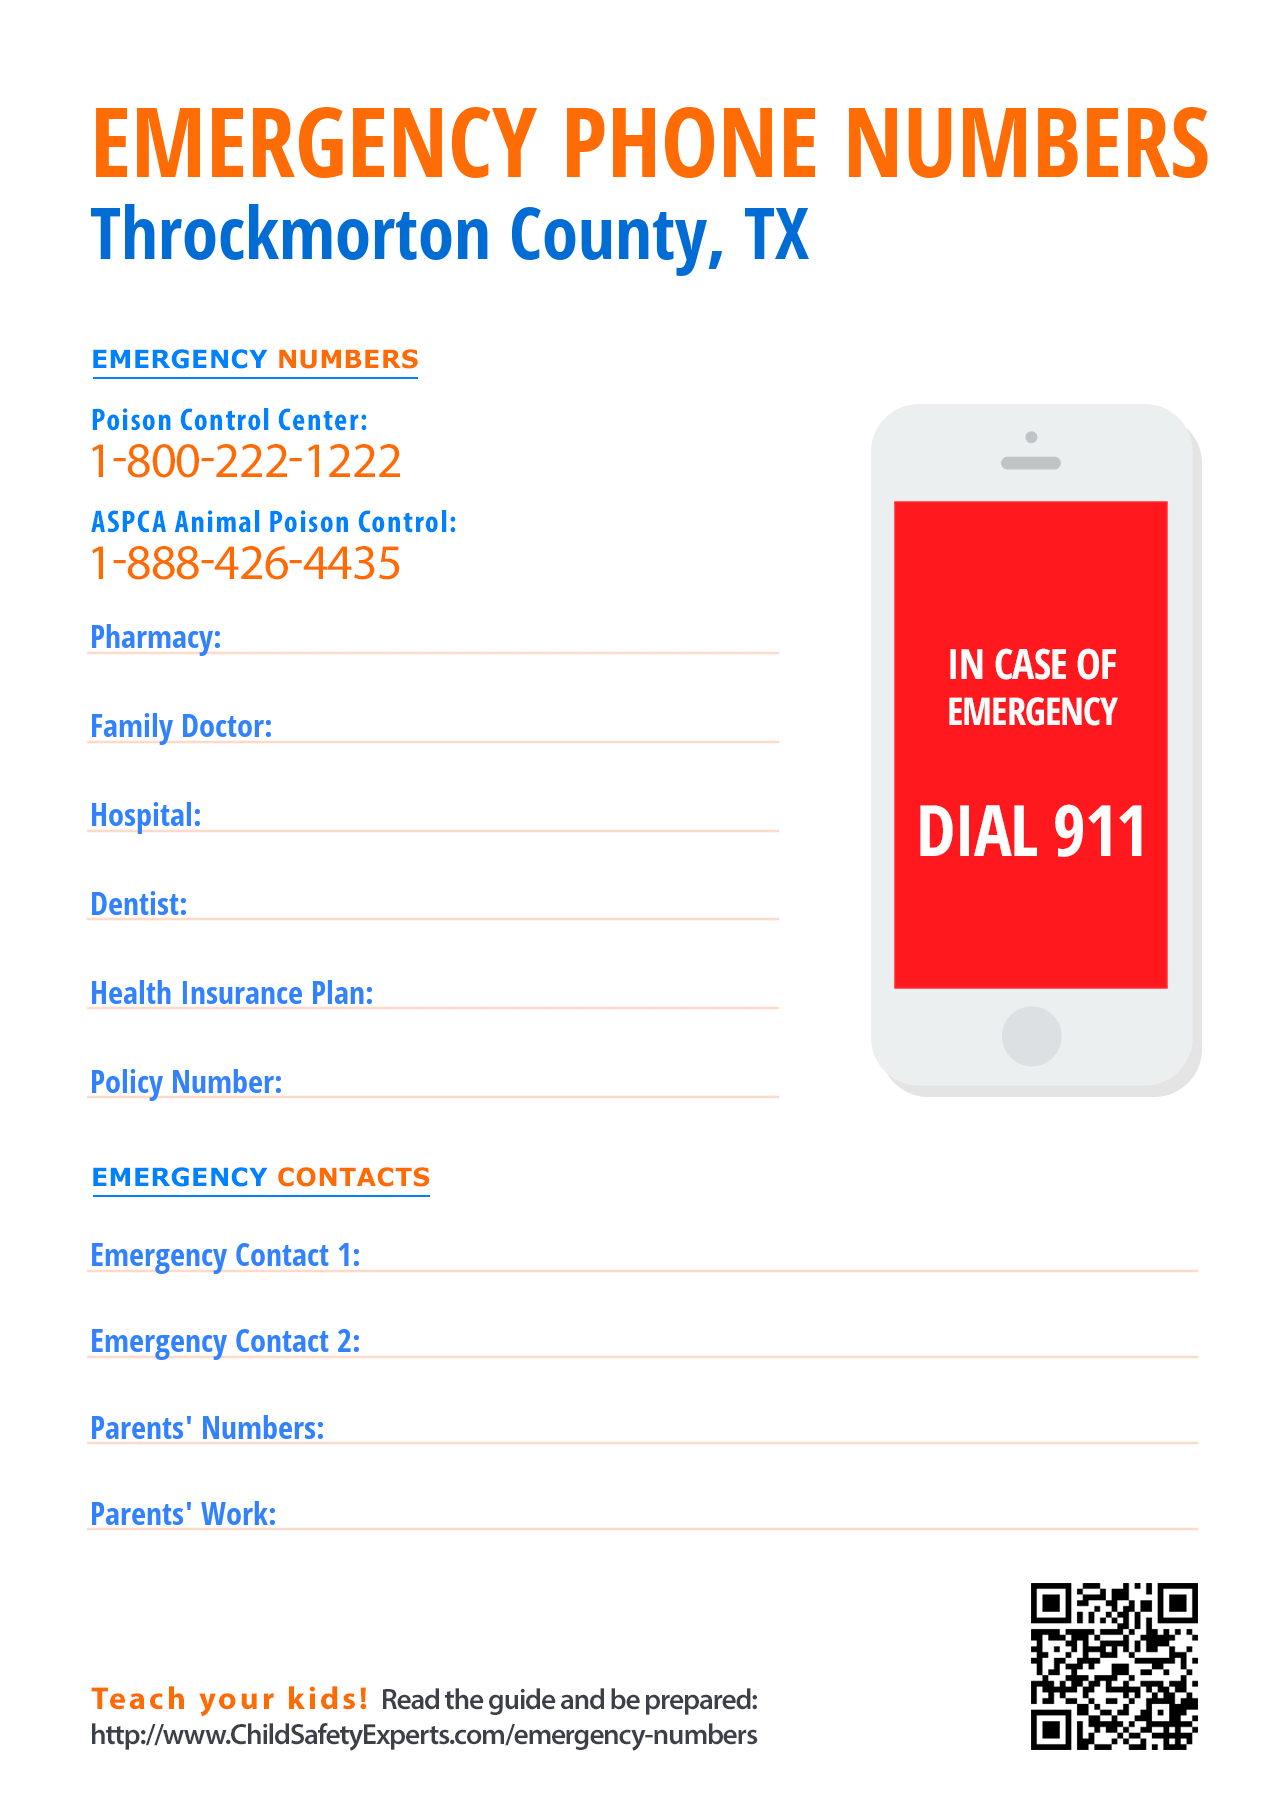 Important emergency phone numbers in Throckmorton County, Texas